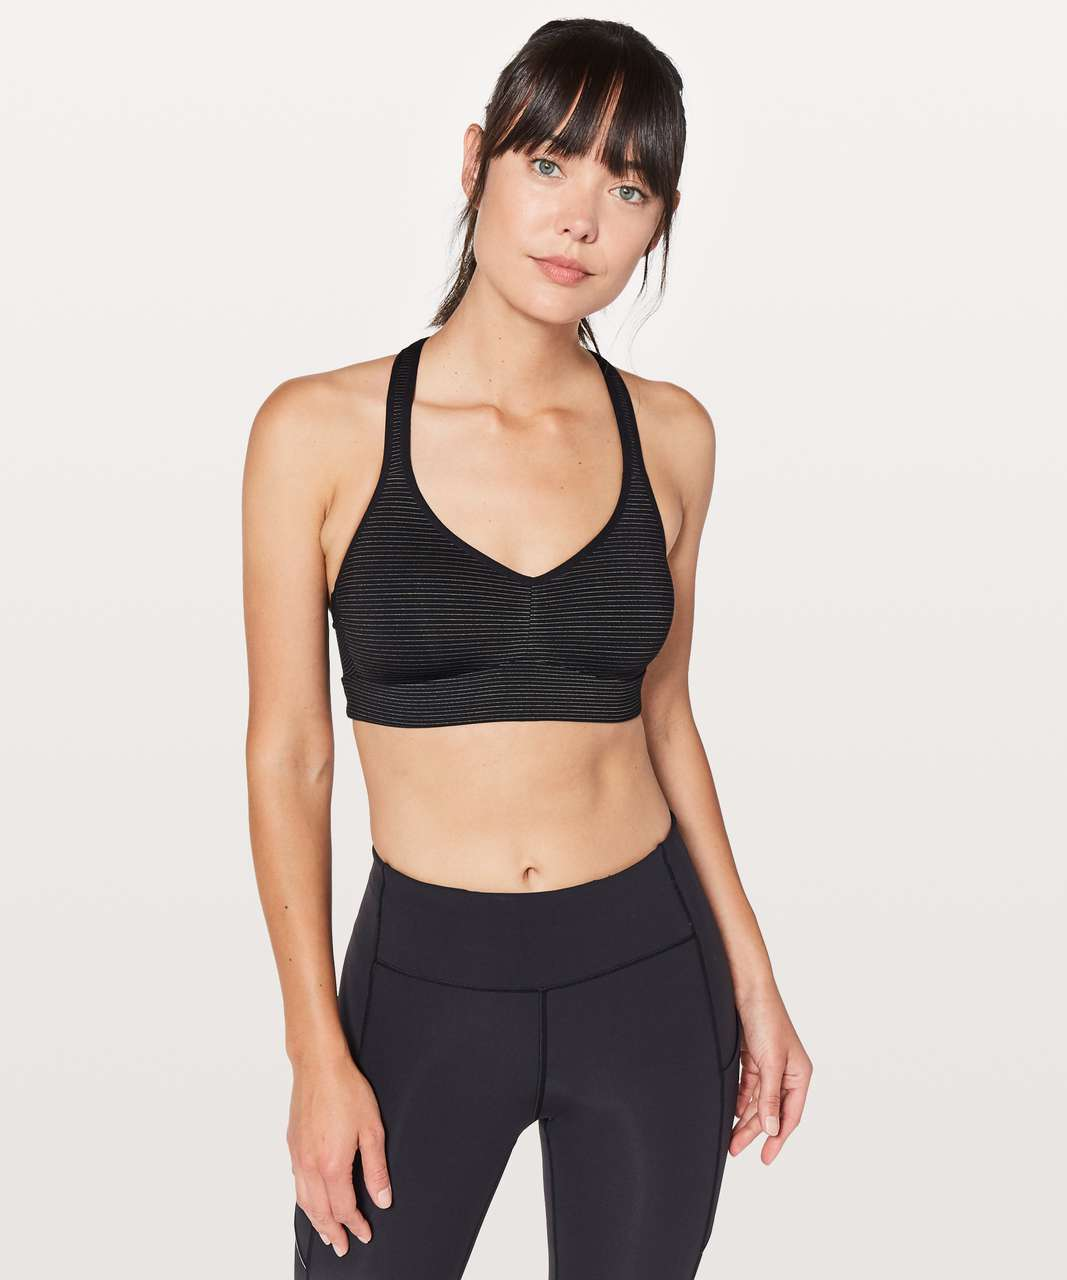 Lululemon Speed Up Bra Anti-Stink - Black